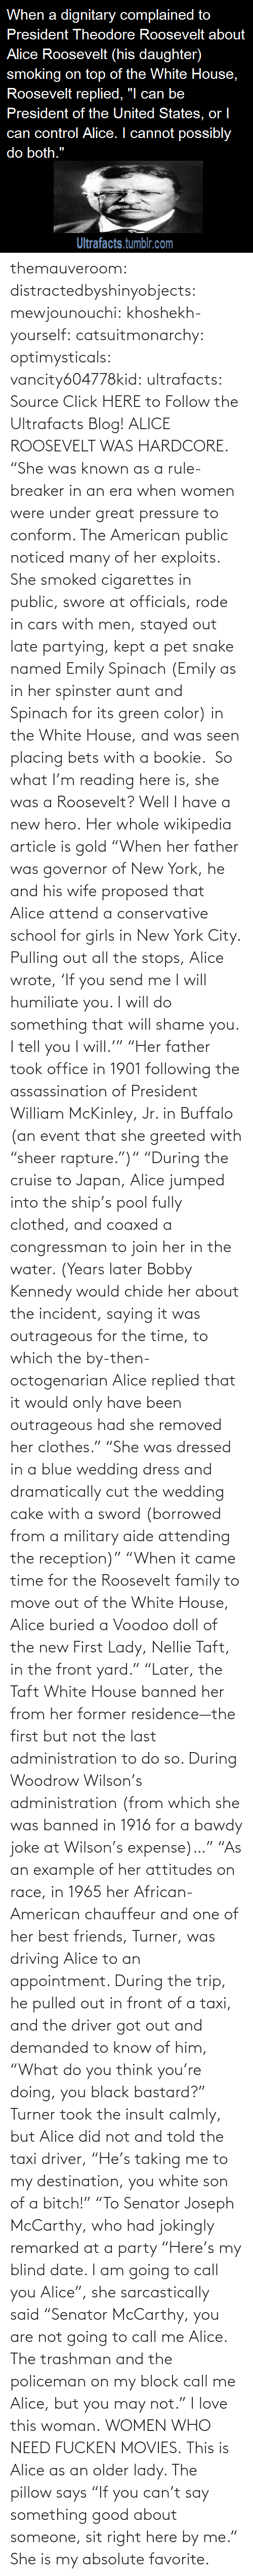 "Cake: themauveroom: distractedbyshinyobjects:  mewjounouchi:  khoshekh-yourself:  catsuitmonarchy:  optimysticals:  vancity604778kid:  ultrafacts:     Source Click HERE to Follow the Ultrafacts Blog!     ALICE ROOSEVELT WAS HARDCORE. ""She was known as a rule-breaker in an era when women were under great pressure to conform. The American public noticed many of her exploits. She smoked cigarettes in public, swore at officials, rode in cars with men, stayed out late partying, kept a pet snake named Emily Spinach (Emily as in her spinster aunt and Spinach for its green color) in the White House, and was seen placing bets with a bookie.    So what I'm reading here is, she was a Roosevelt?  Well I have a new hero.  Her whole wikipedia article is gold ""When her father was governor of New York, he and his wife proposed that Alice attend a conservative school for girls in New York City. Pulling out all the stops, Alice wrote, 'If you send me I will humiliate you. I will do something that will shame you. I tell you I will.'"" ""Her father took office in 1901 following the assassination of President William McKinley, Jr. in Buffalo (an event that she greeted with ""sheer rapture."")"" ""During the cruise to Japan, Alice jumped into the ship's pool fully clothed, and coaxed a congressman to join her in the water. (Years later Bobby Kennedy would chide her about the incident, saying it was outrageous for the time, to which the by-then-octogenarian Alice replied that it would only have been outrageous had she removed her clothes."" ""She was dressed in a blue wedding dress and dramatically cut the wedding cake with a sword (borrowed from a military aide attending the reception)"" ""When it came time for the Roosevelt family to move out of the White House, Alice buried a Voodoo doll of the new First Lady, Nellie Taft, in the front yard."" ""Later, the Taft White House banned her from her former residence—the first but not the last administration to do so. During Woodrow Wilson's administration (from which she was banned in 1916 for a bawdy joke at Wilson's expense)…"" ""As an example of her attitudes on race, in 1965 her African-American chauffeur and one of her best friends, Turner, was driving Alice to an appointment. During the trip, he pulled out in front of a taxi, and the driver got out and demanded to know of him, ""What do you think you're doing, you black bastard?"" Turner took the insult calmly, but Alice did not and told the taxi driver, ""He's taking me to my destination, you white son of a bitch!"" ""To Senator Joseph McCarthy, who had jokingly remarked at a party ""Here's my blind date. I am going to call you Alice"", she sarcastically said ""Senator McCarthy, you are not going to call me Alice. The trashman and the policeman on my block call me Alice, but you may not.""  I love this woman.  WOMEN WHO NEED FUCKEN MOVIES.   This is Alice as an older lady. The pillow says ""If you can't say something good about someone, sit right here by me.""  She is my absolute favorite."